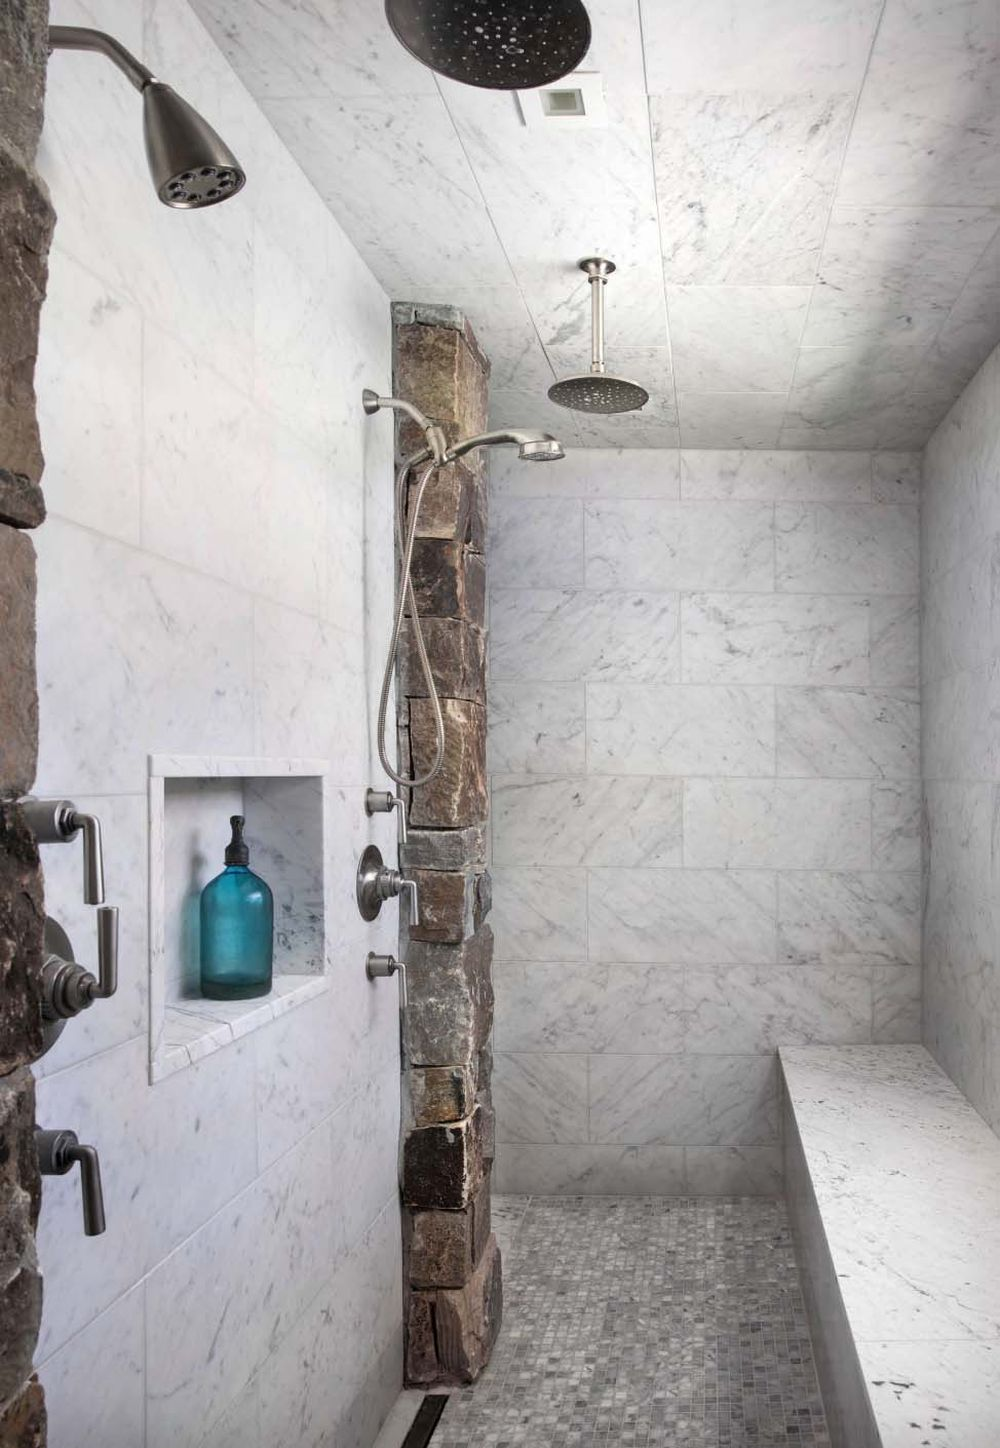 The combination of natural stone and marble tiles gives the walk-in shower a unique character